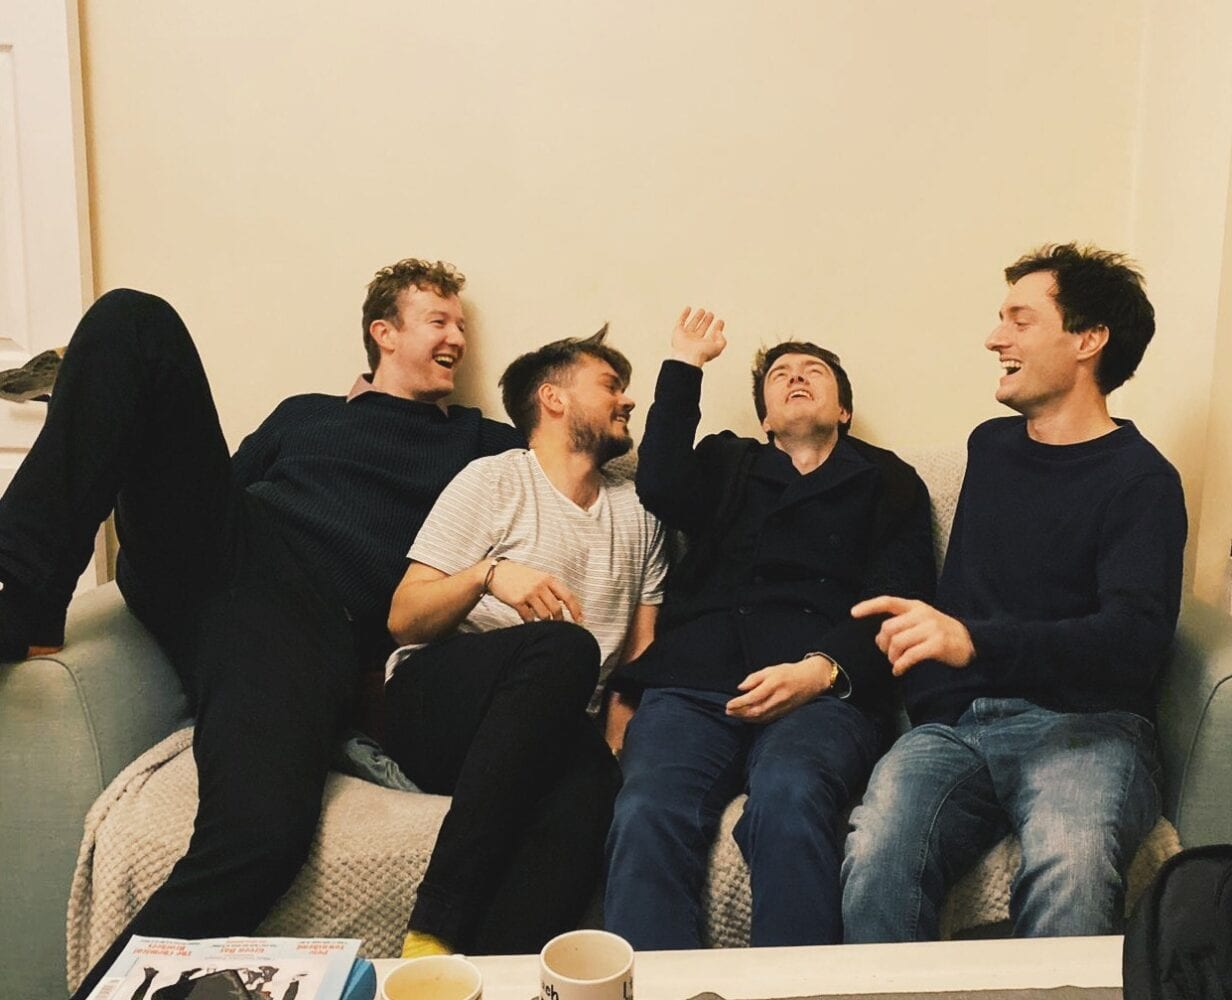 The four male members of the band Slender Pins laughing on a sofa